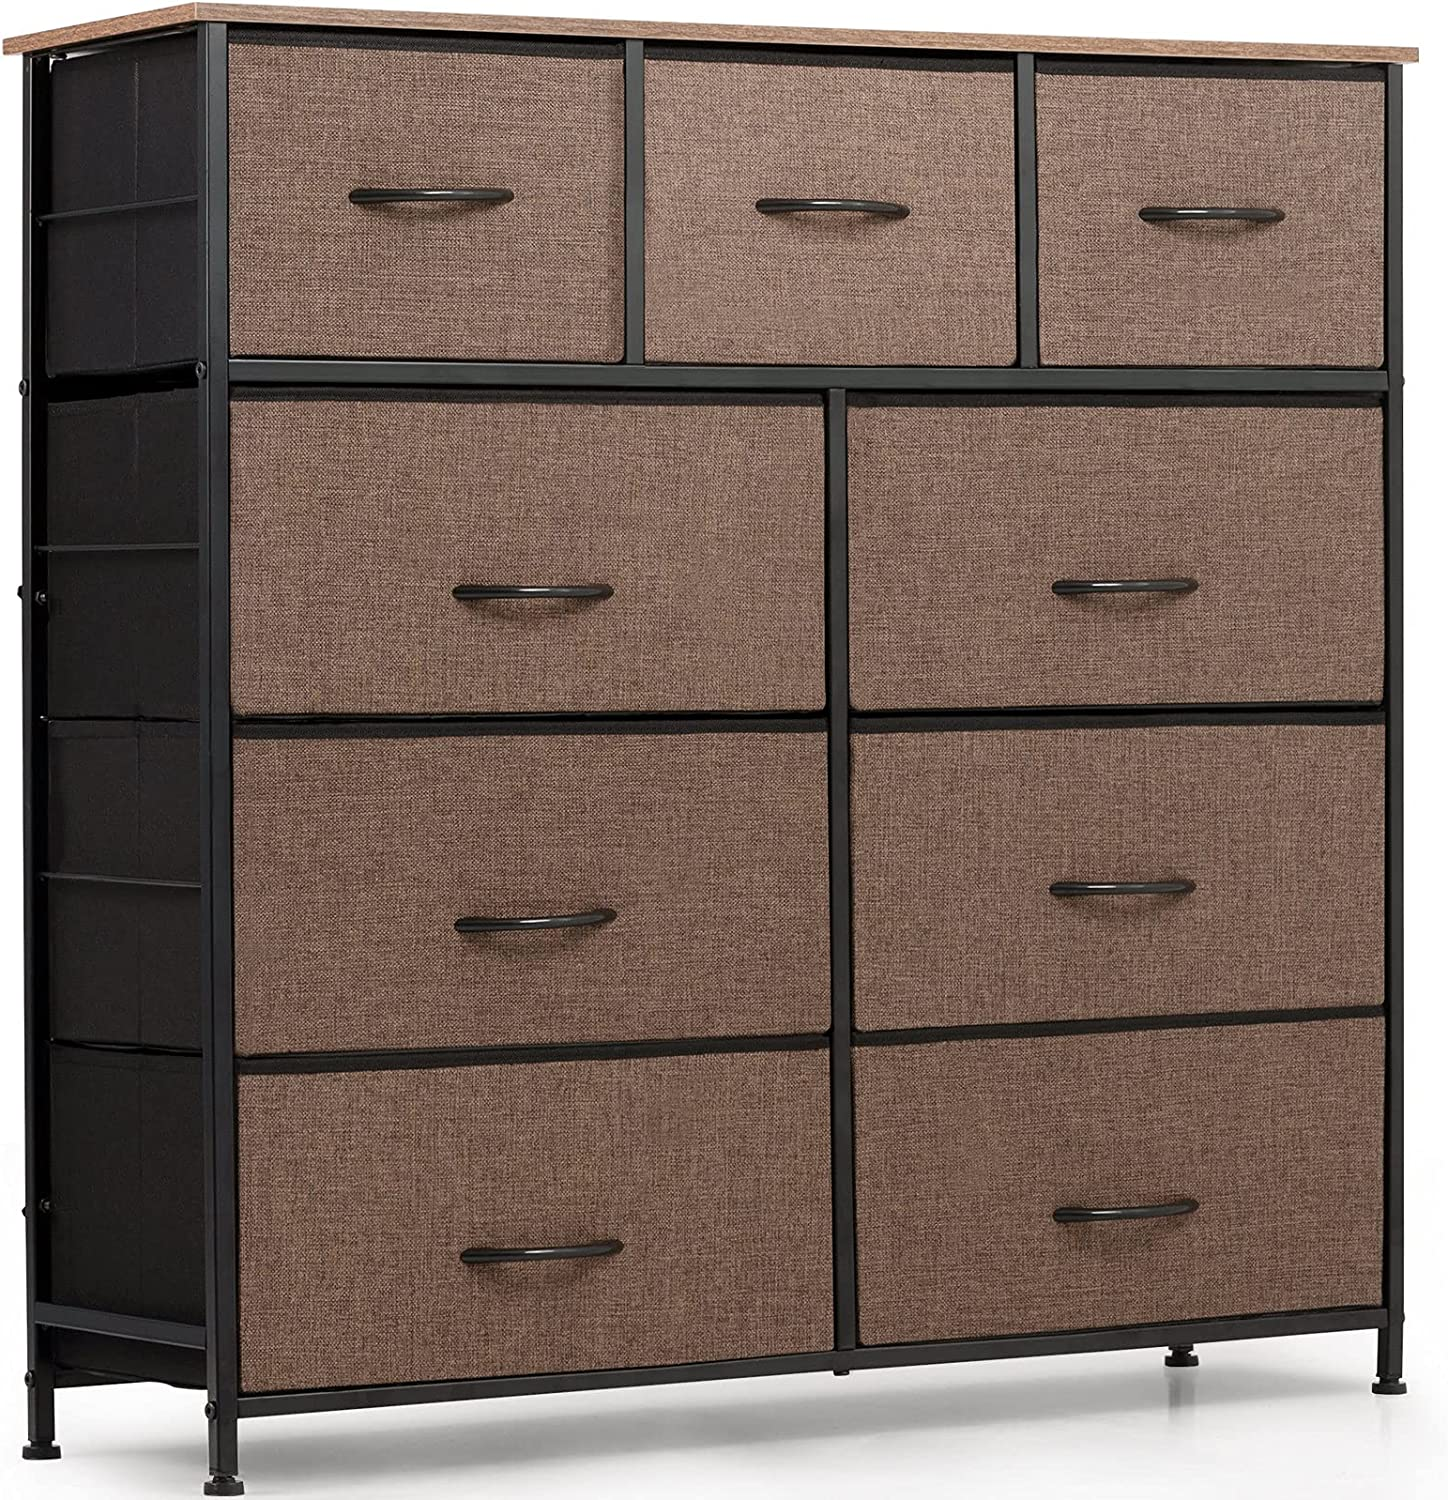 ODK Dresser with Opening large release sale 9 Seattle Mall Drawers Tower Storage Fabric Unit Organizer